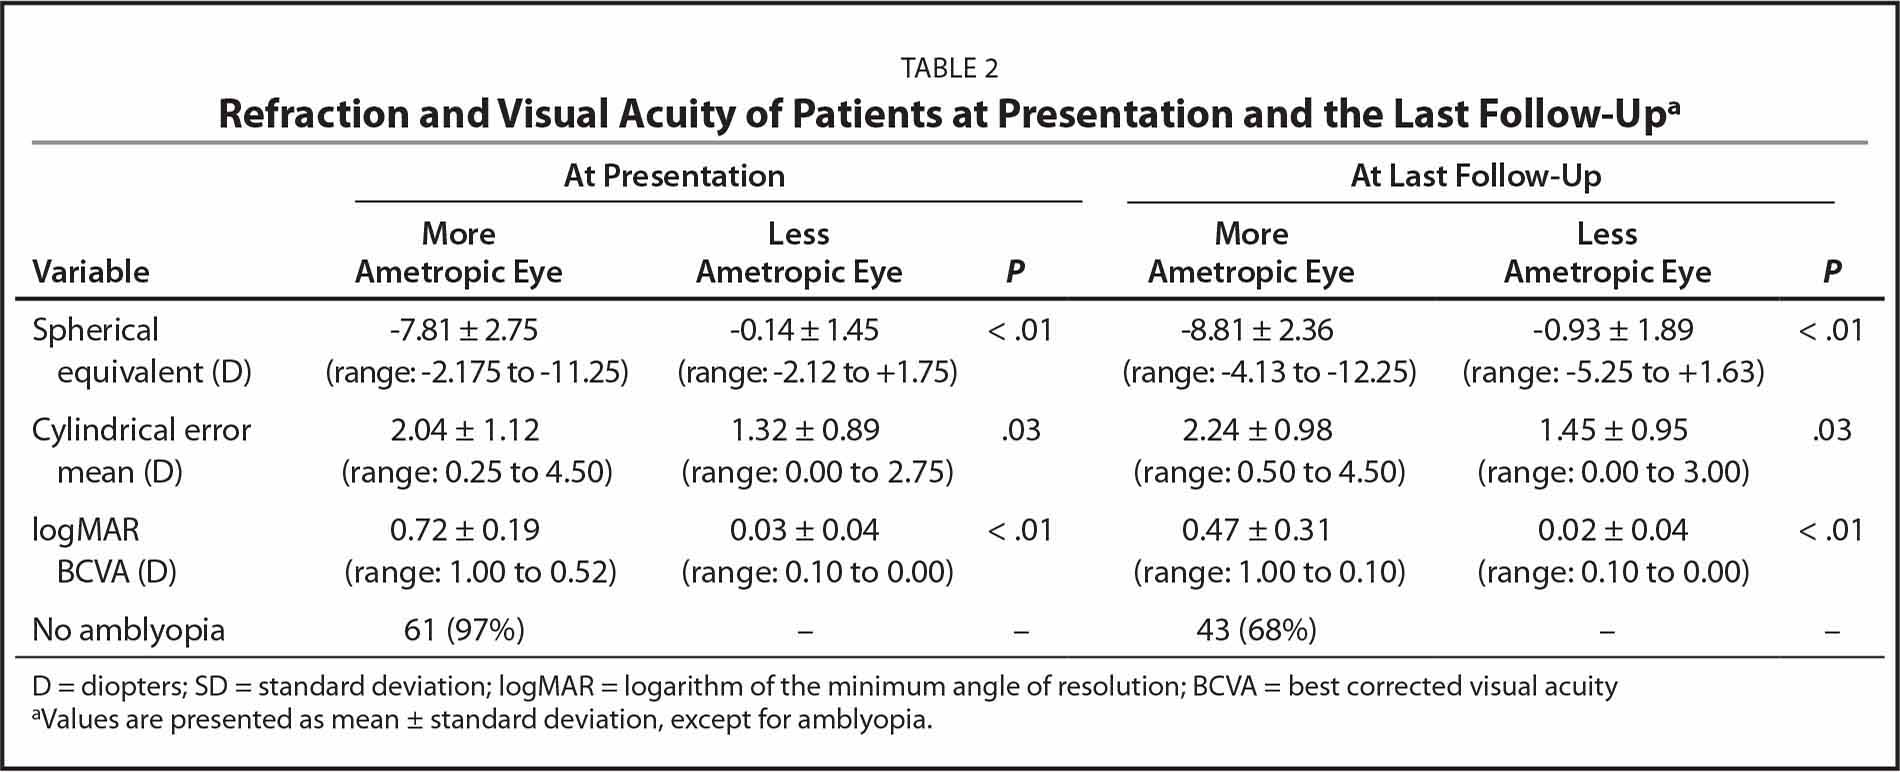 Refraction and Visual Acuity of Patients at Presentation and the Last Follow-Upa